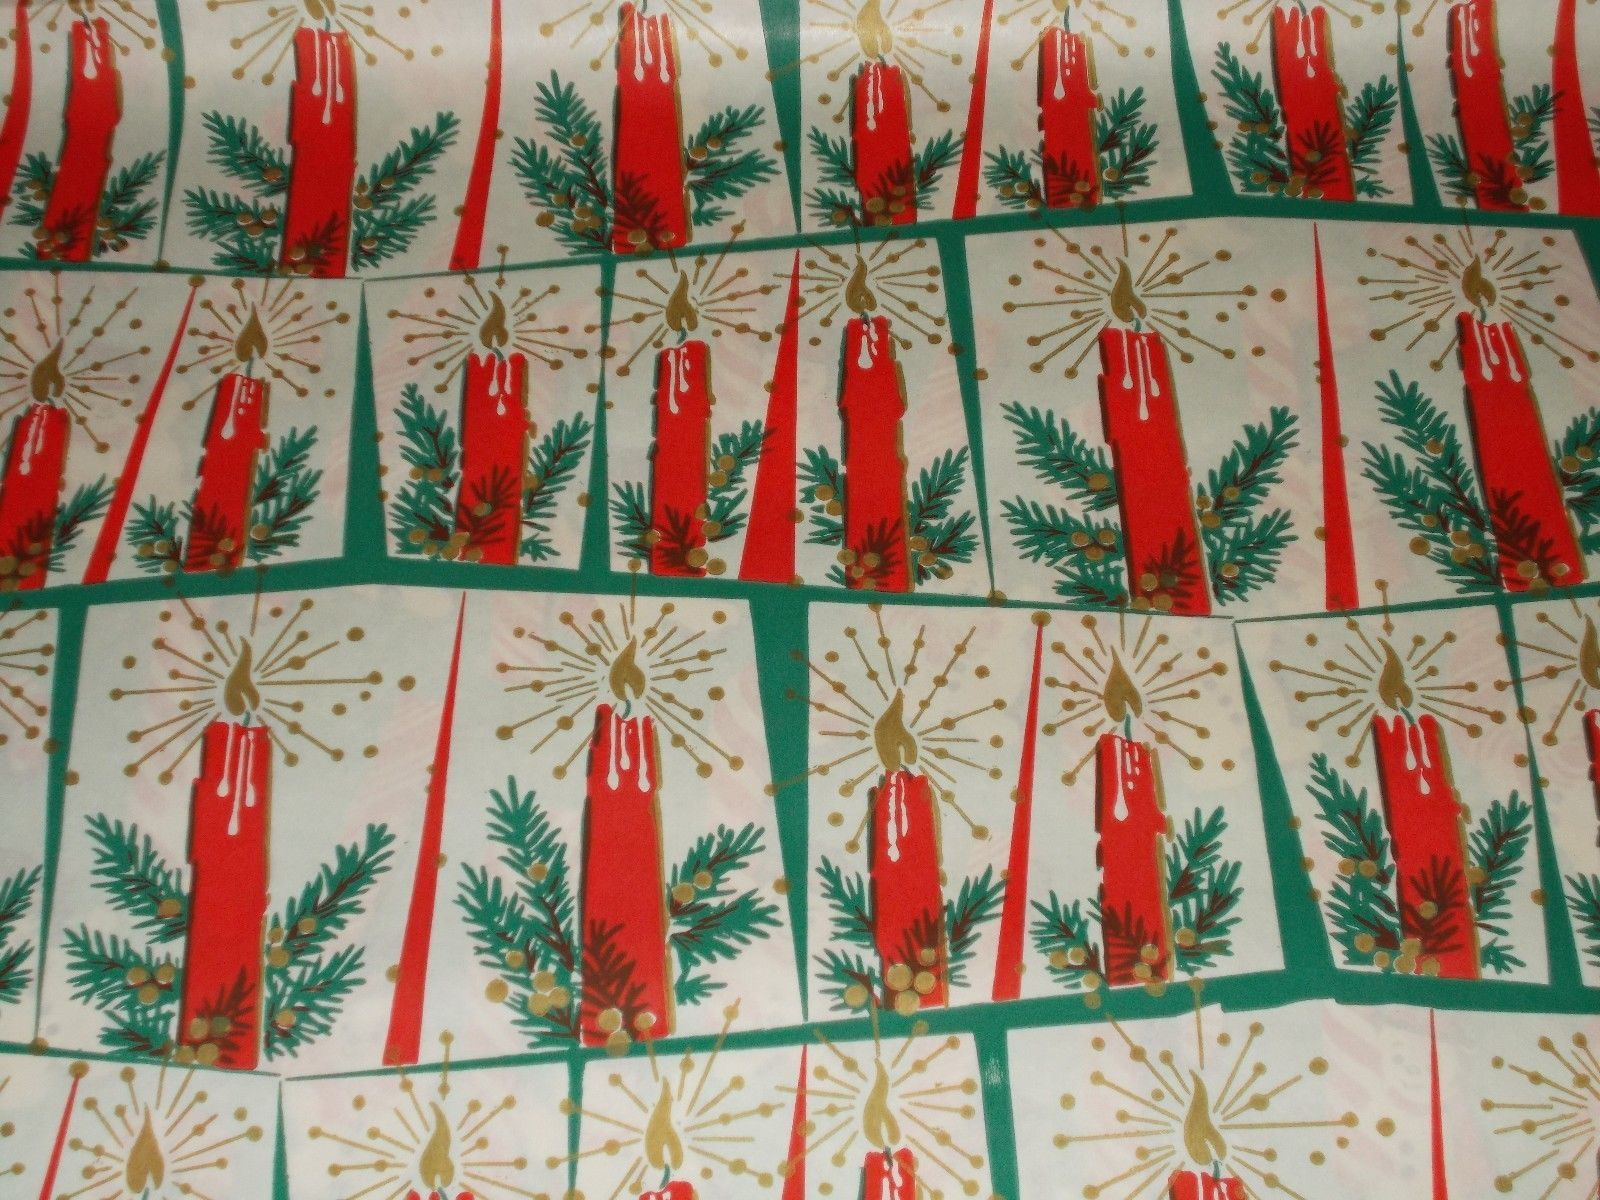 Vtg Christmas Wrapping Paper Gift Wrap 1950 Nos Red Candles Mcm Atomic Era E Vintage Christmas Wrapping Paper Christmas Wrapping Paper Vintage Wrapping Paper